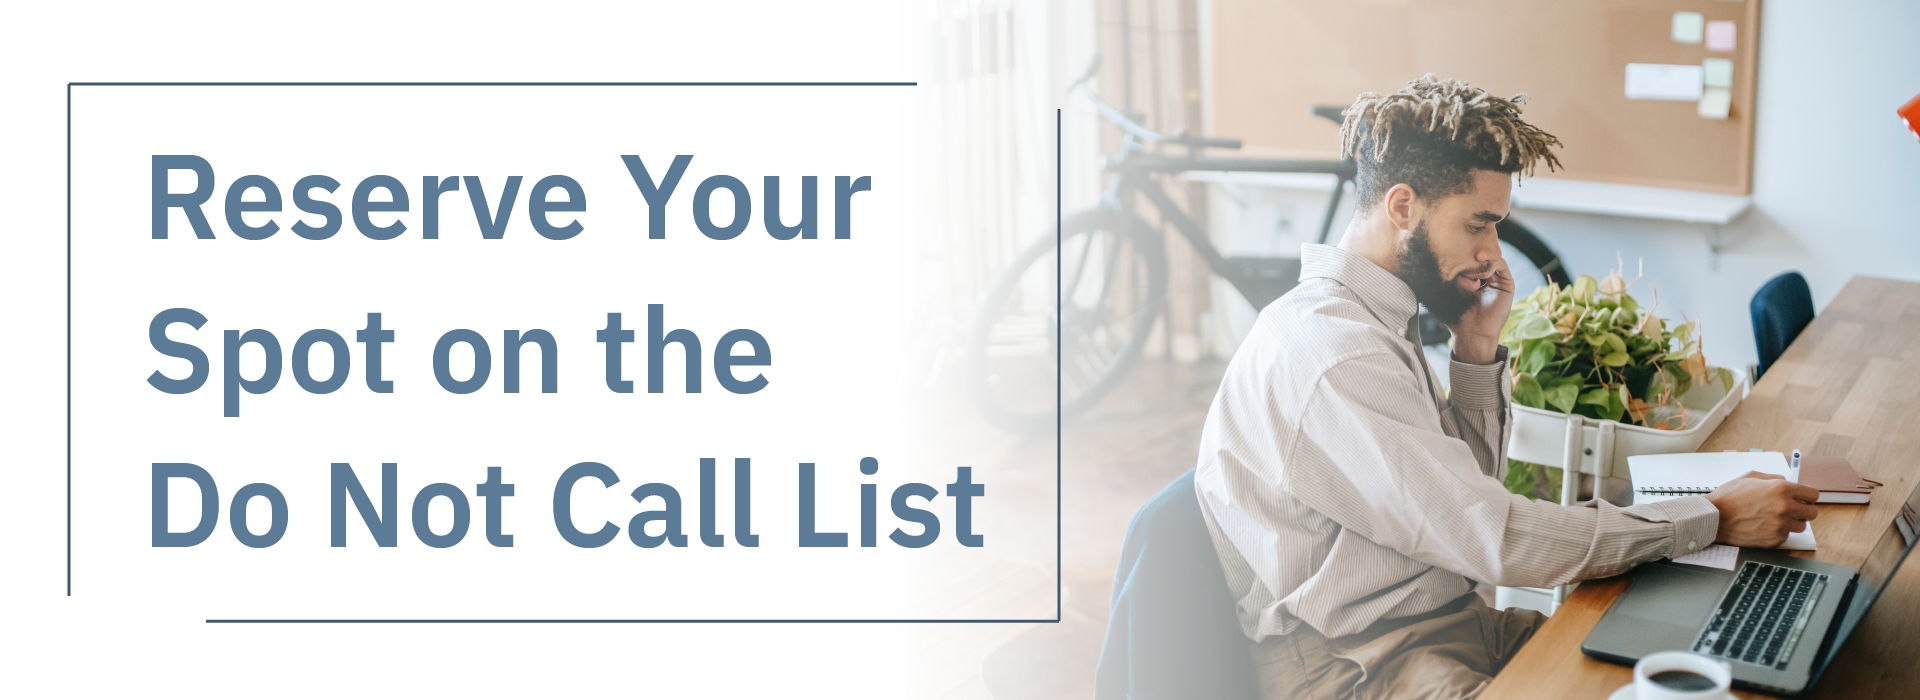 Reserve Your Spot on the Do Not Call List